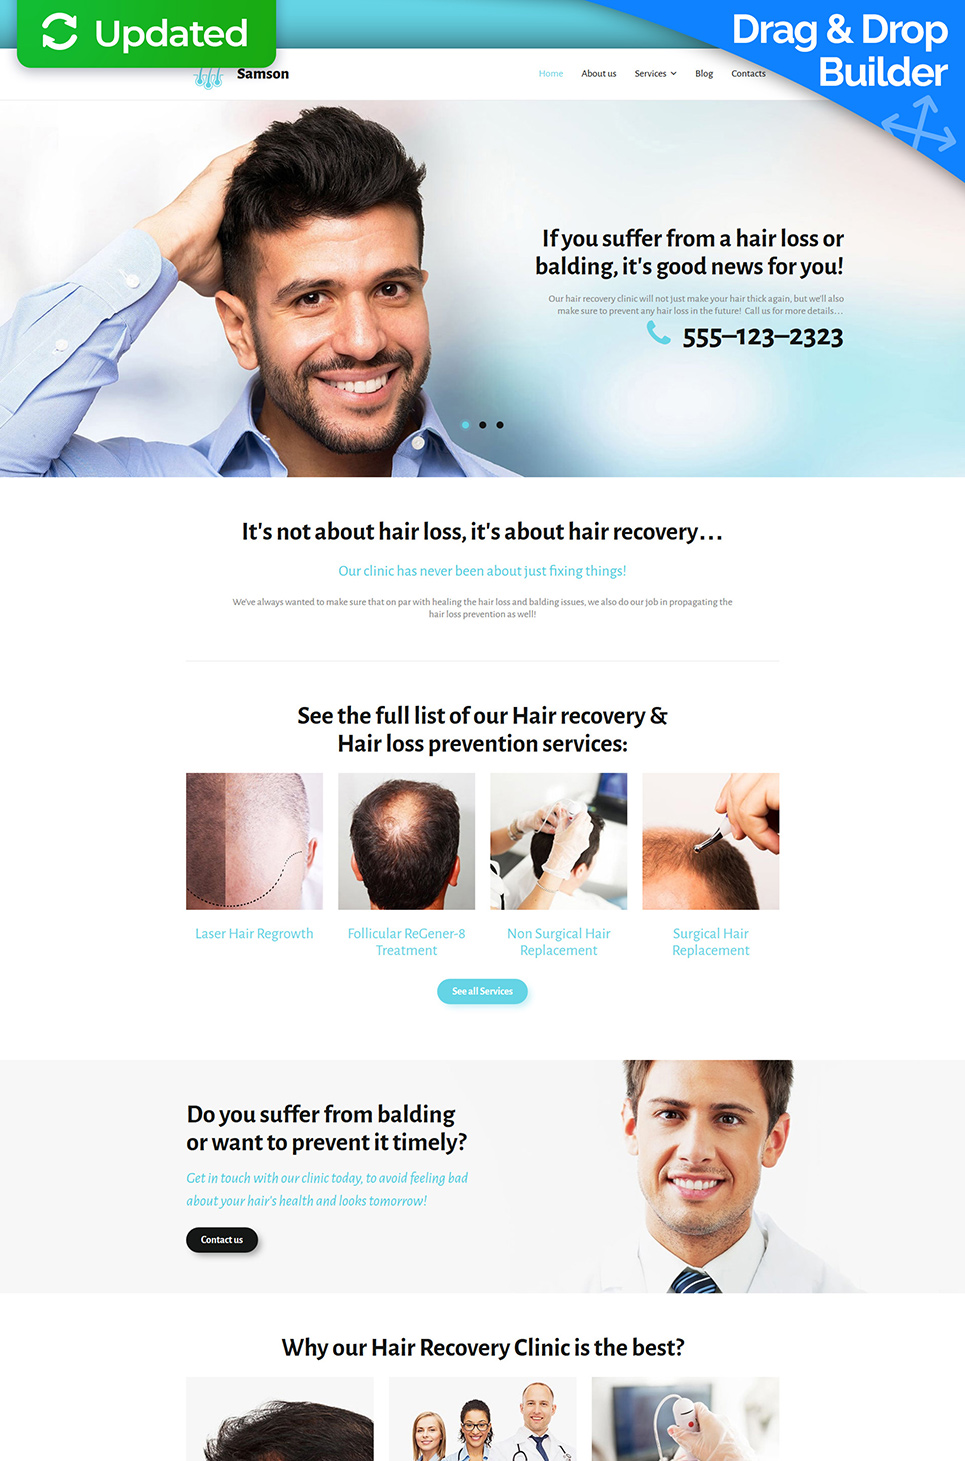 Hair Recovery Clinic MotoCMS 3 Responsive Website Template - image